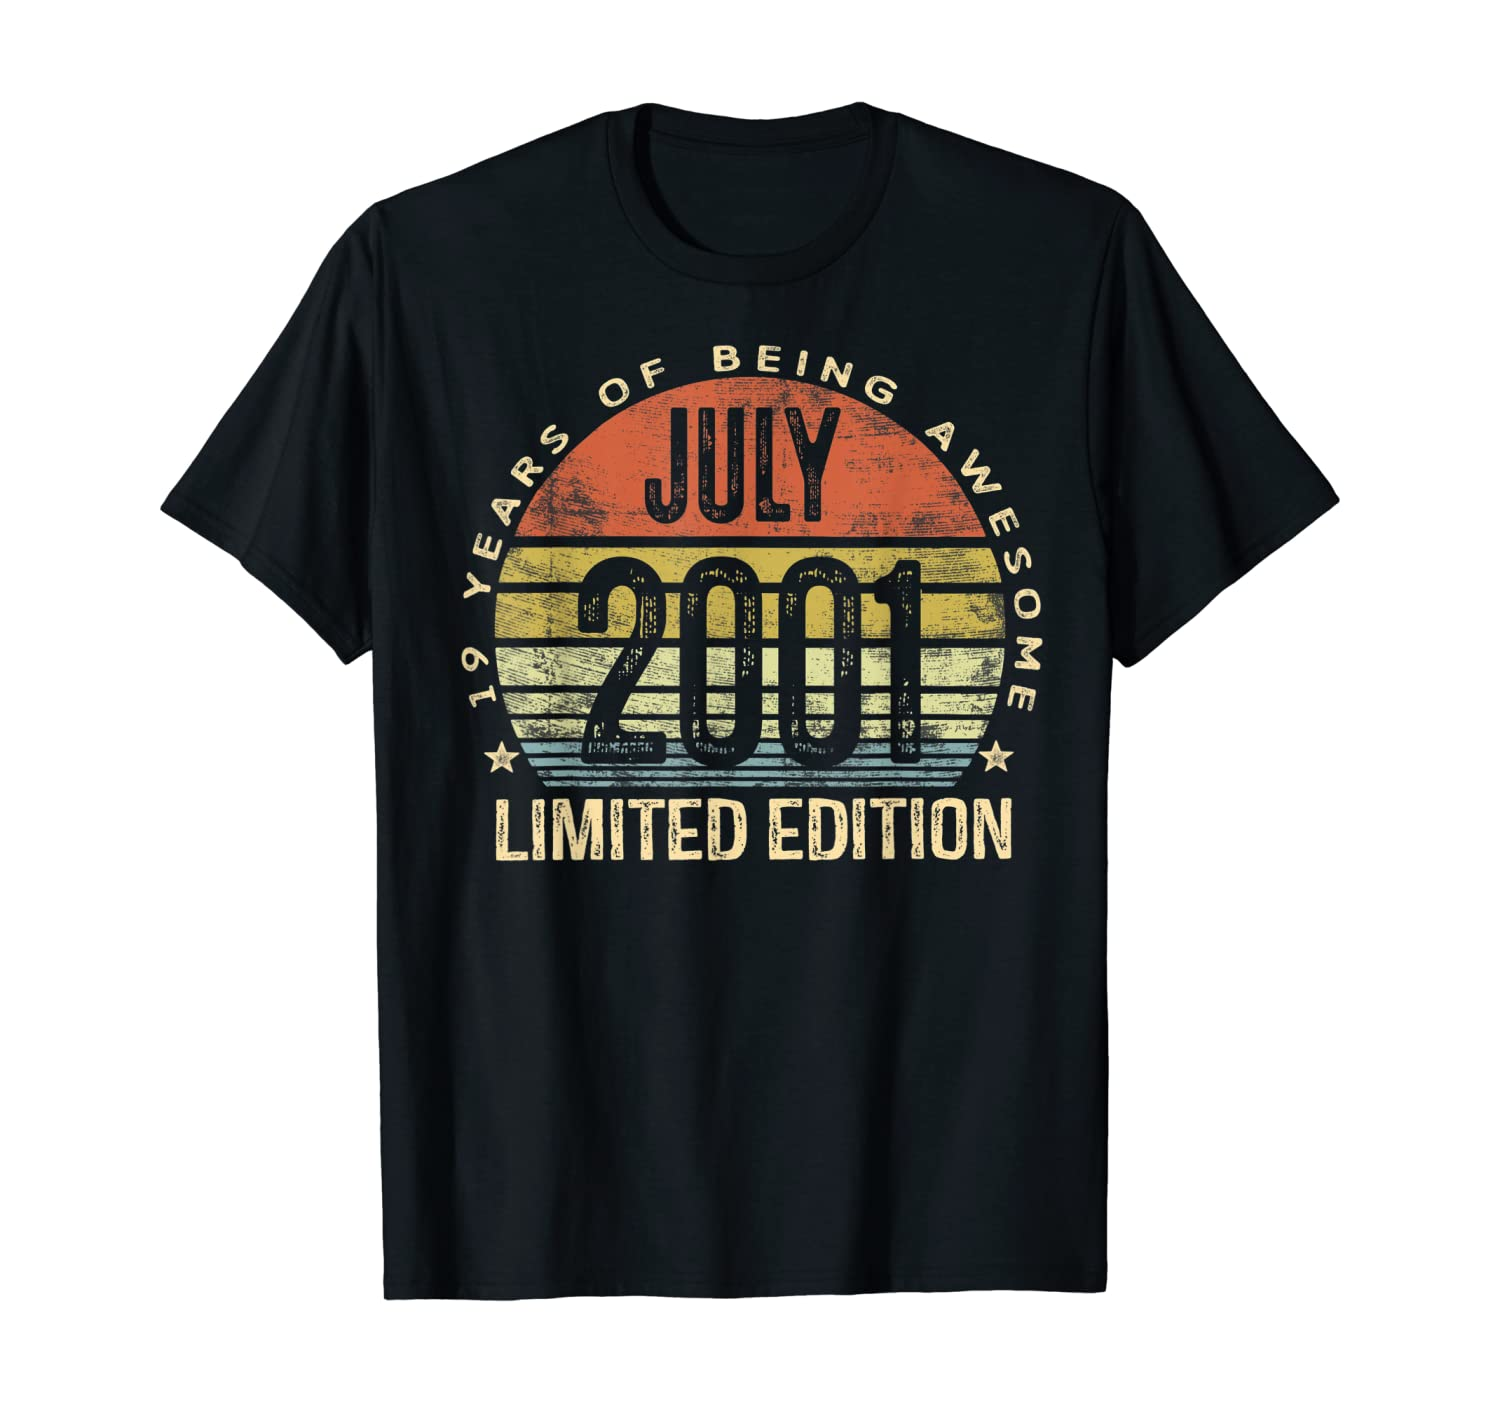 July 2001 Limited Edition 19th Birthday 19 Year Old Gift T-Shirt